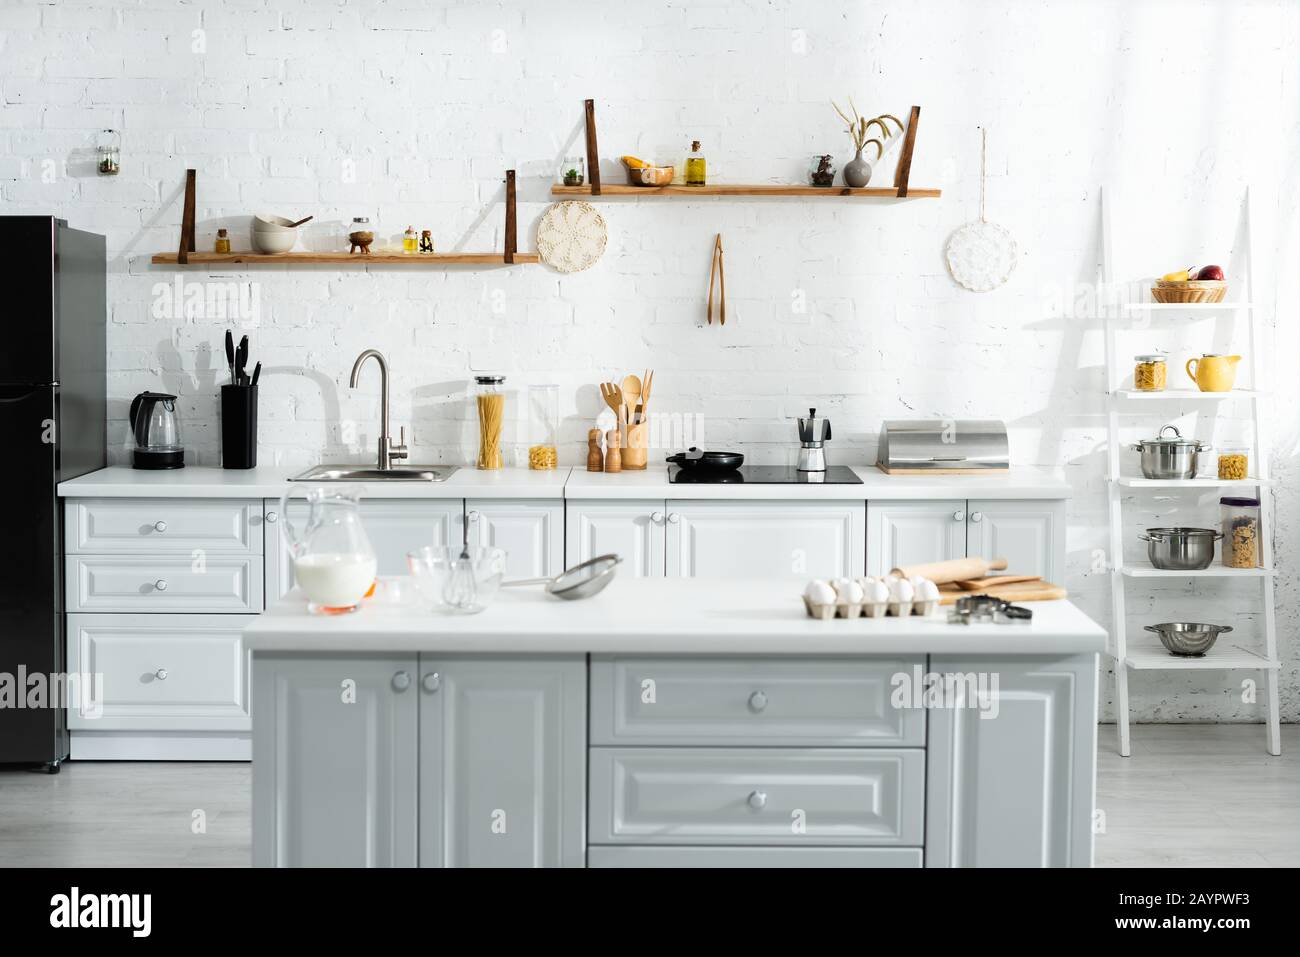 interior of kitchen with cooking utensils, food, milk and